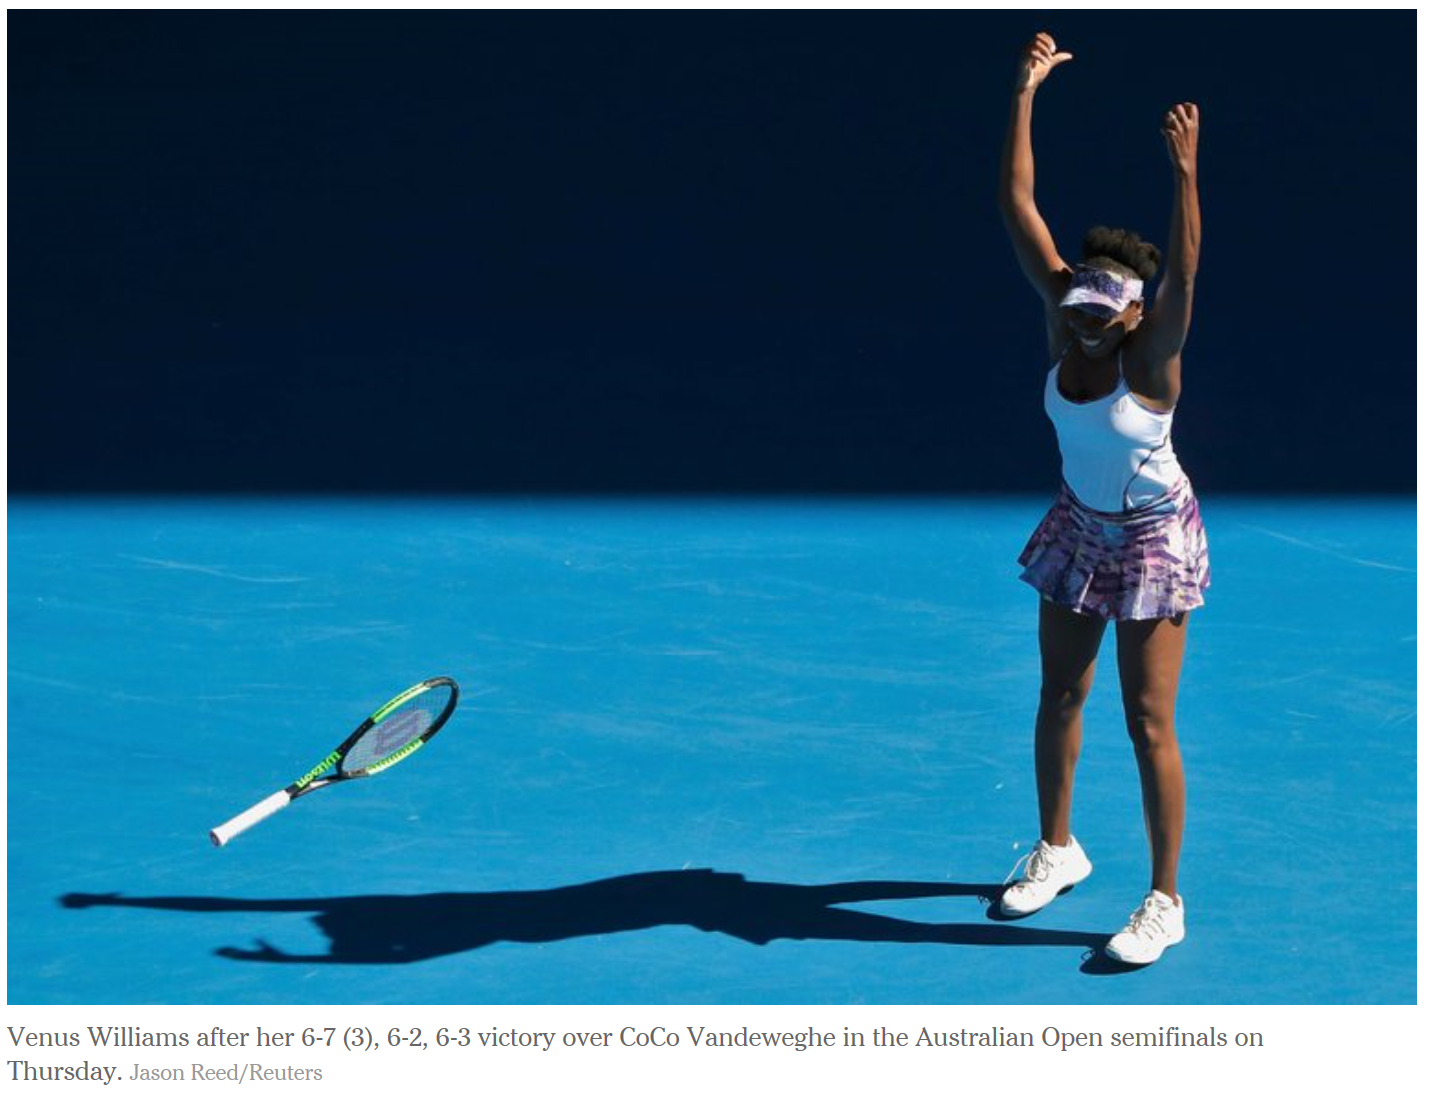 Inspired by Venus: What leaders can learn from Venus Williams' amazing Australian Open run